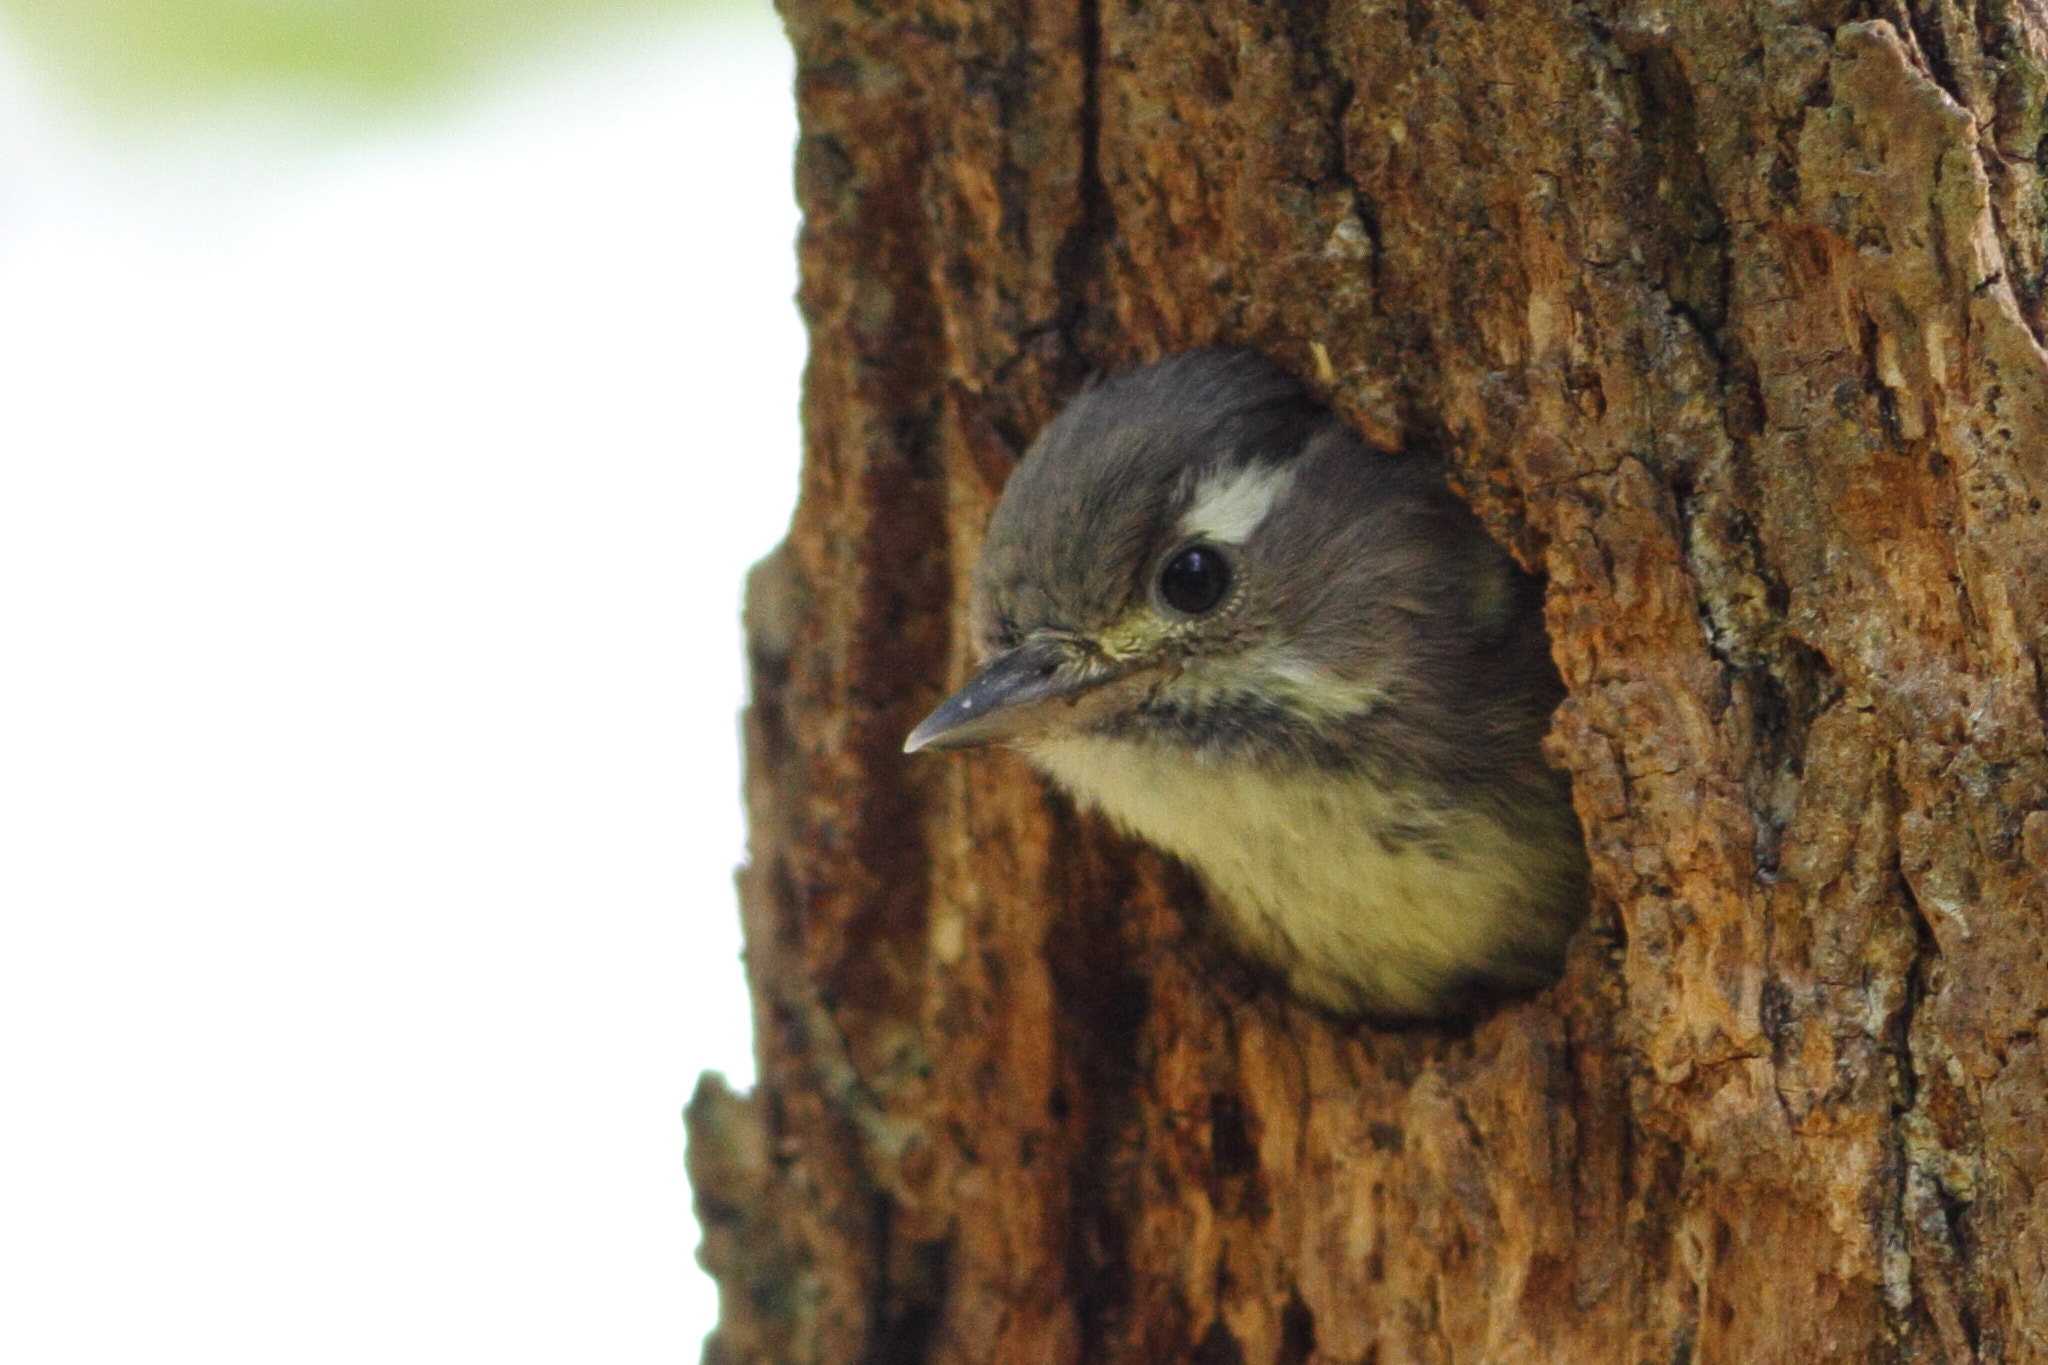 Photograph Child of the pygmy woodpecker by Yellow Monkey on 500px